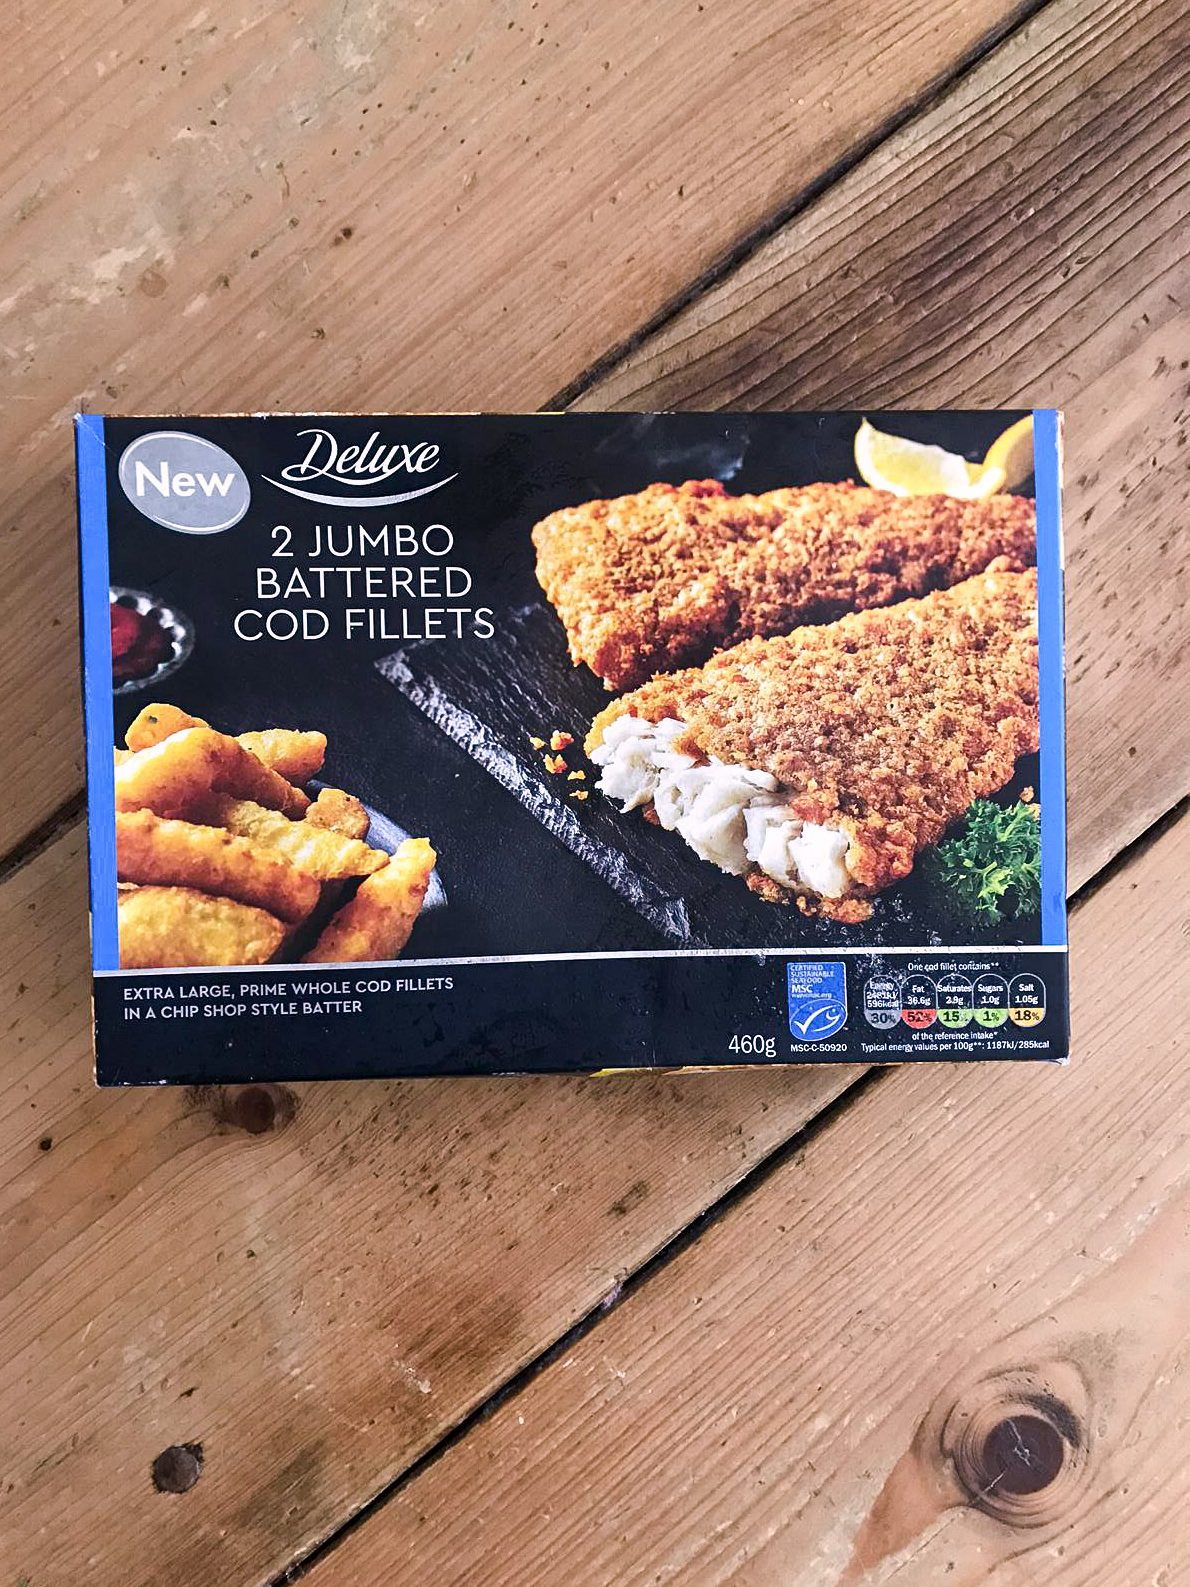 Deluxe 2 Jumbo Battered Cod Fillets